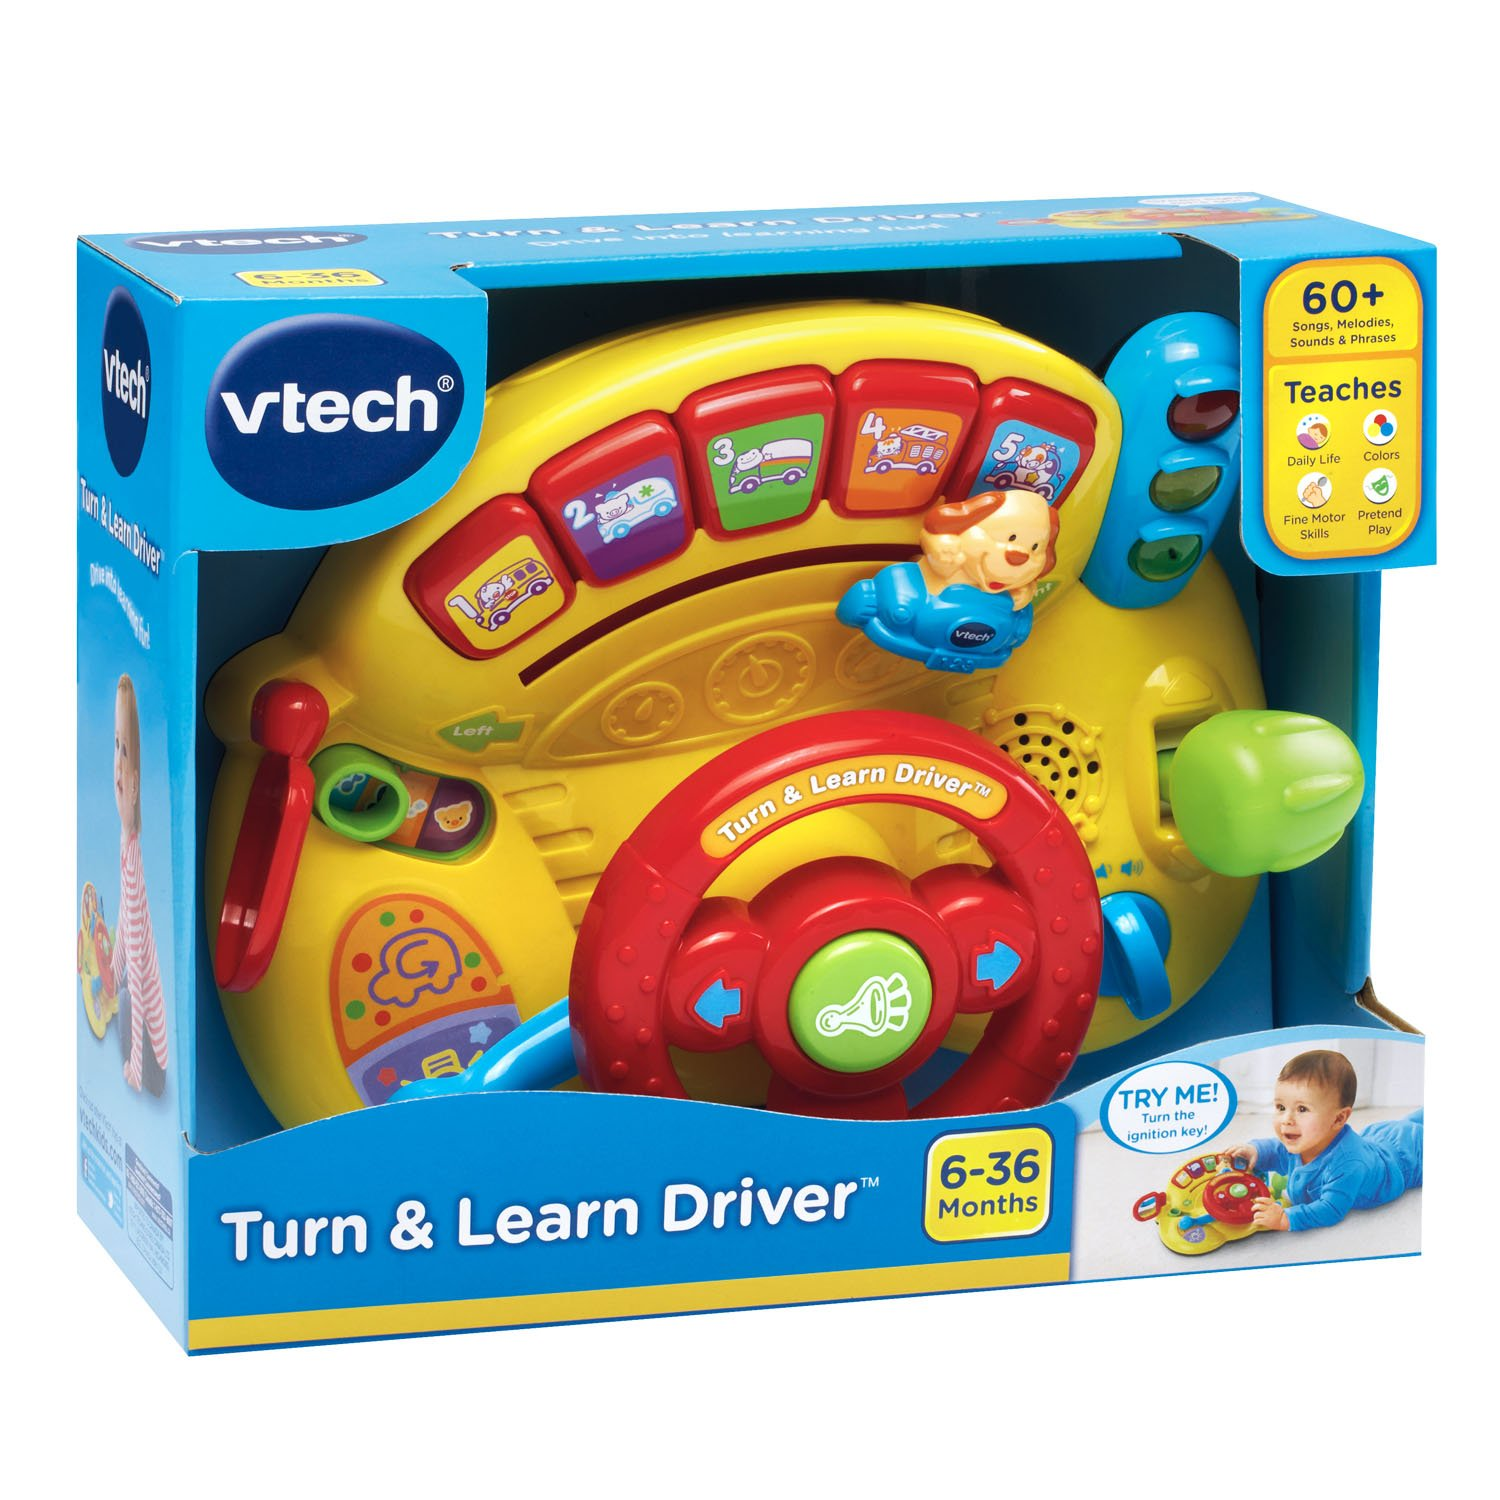 VTech Turn and Learn Driver Amazon Toys & Games